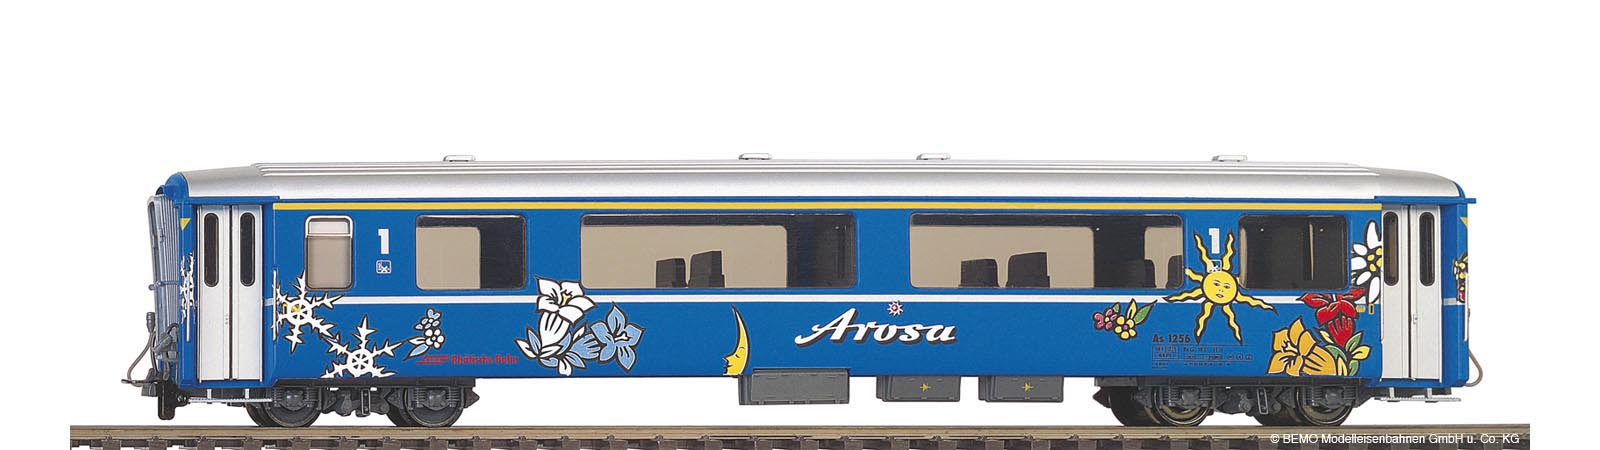 "Vůz salonní ""Arosa - Express"" RhB As 1256"